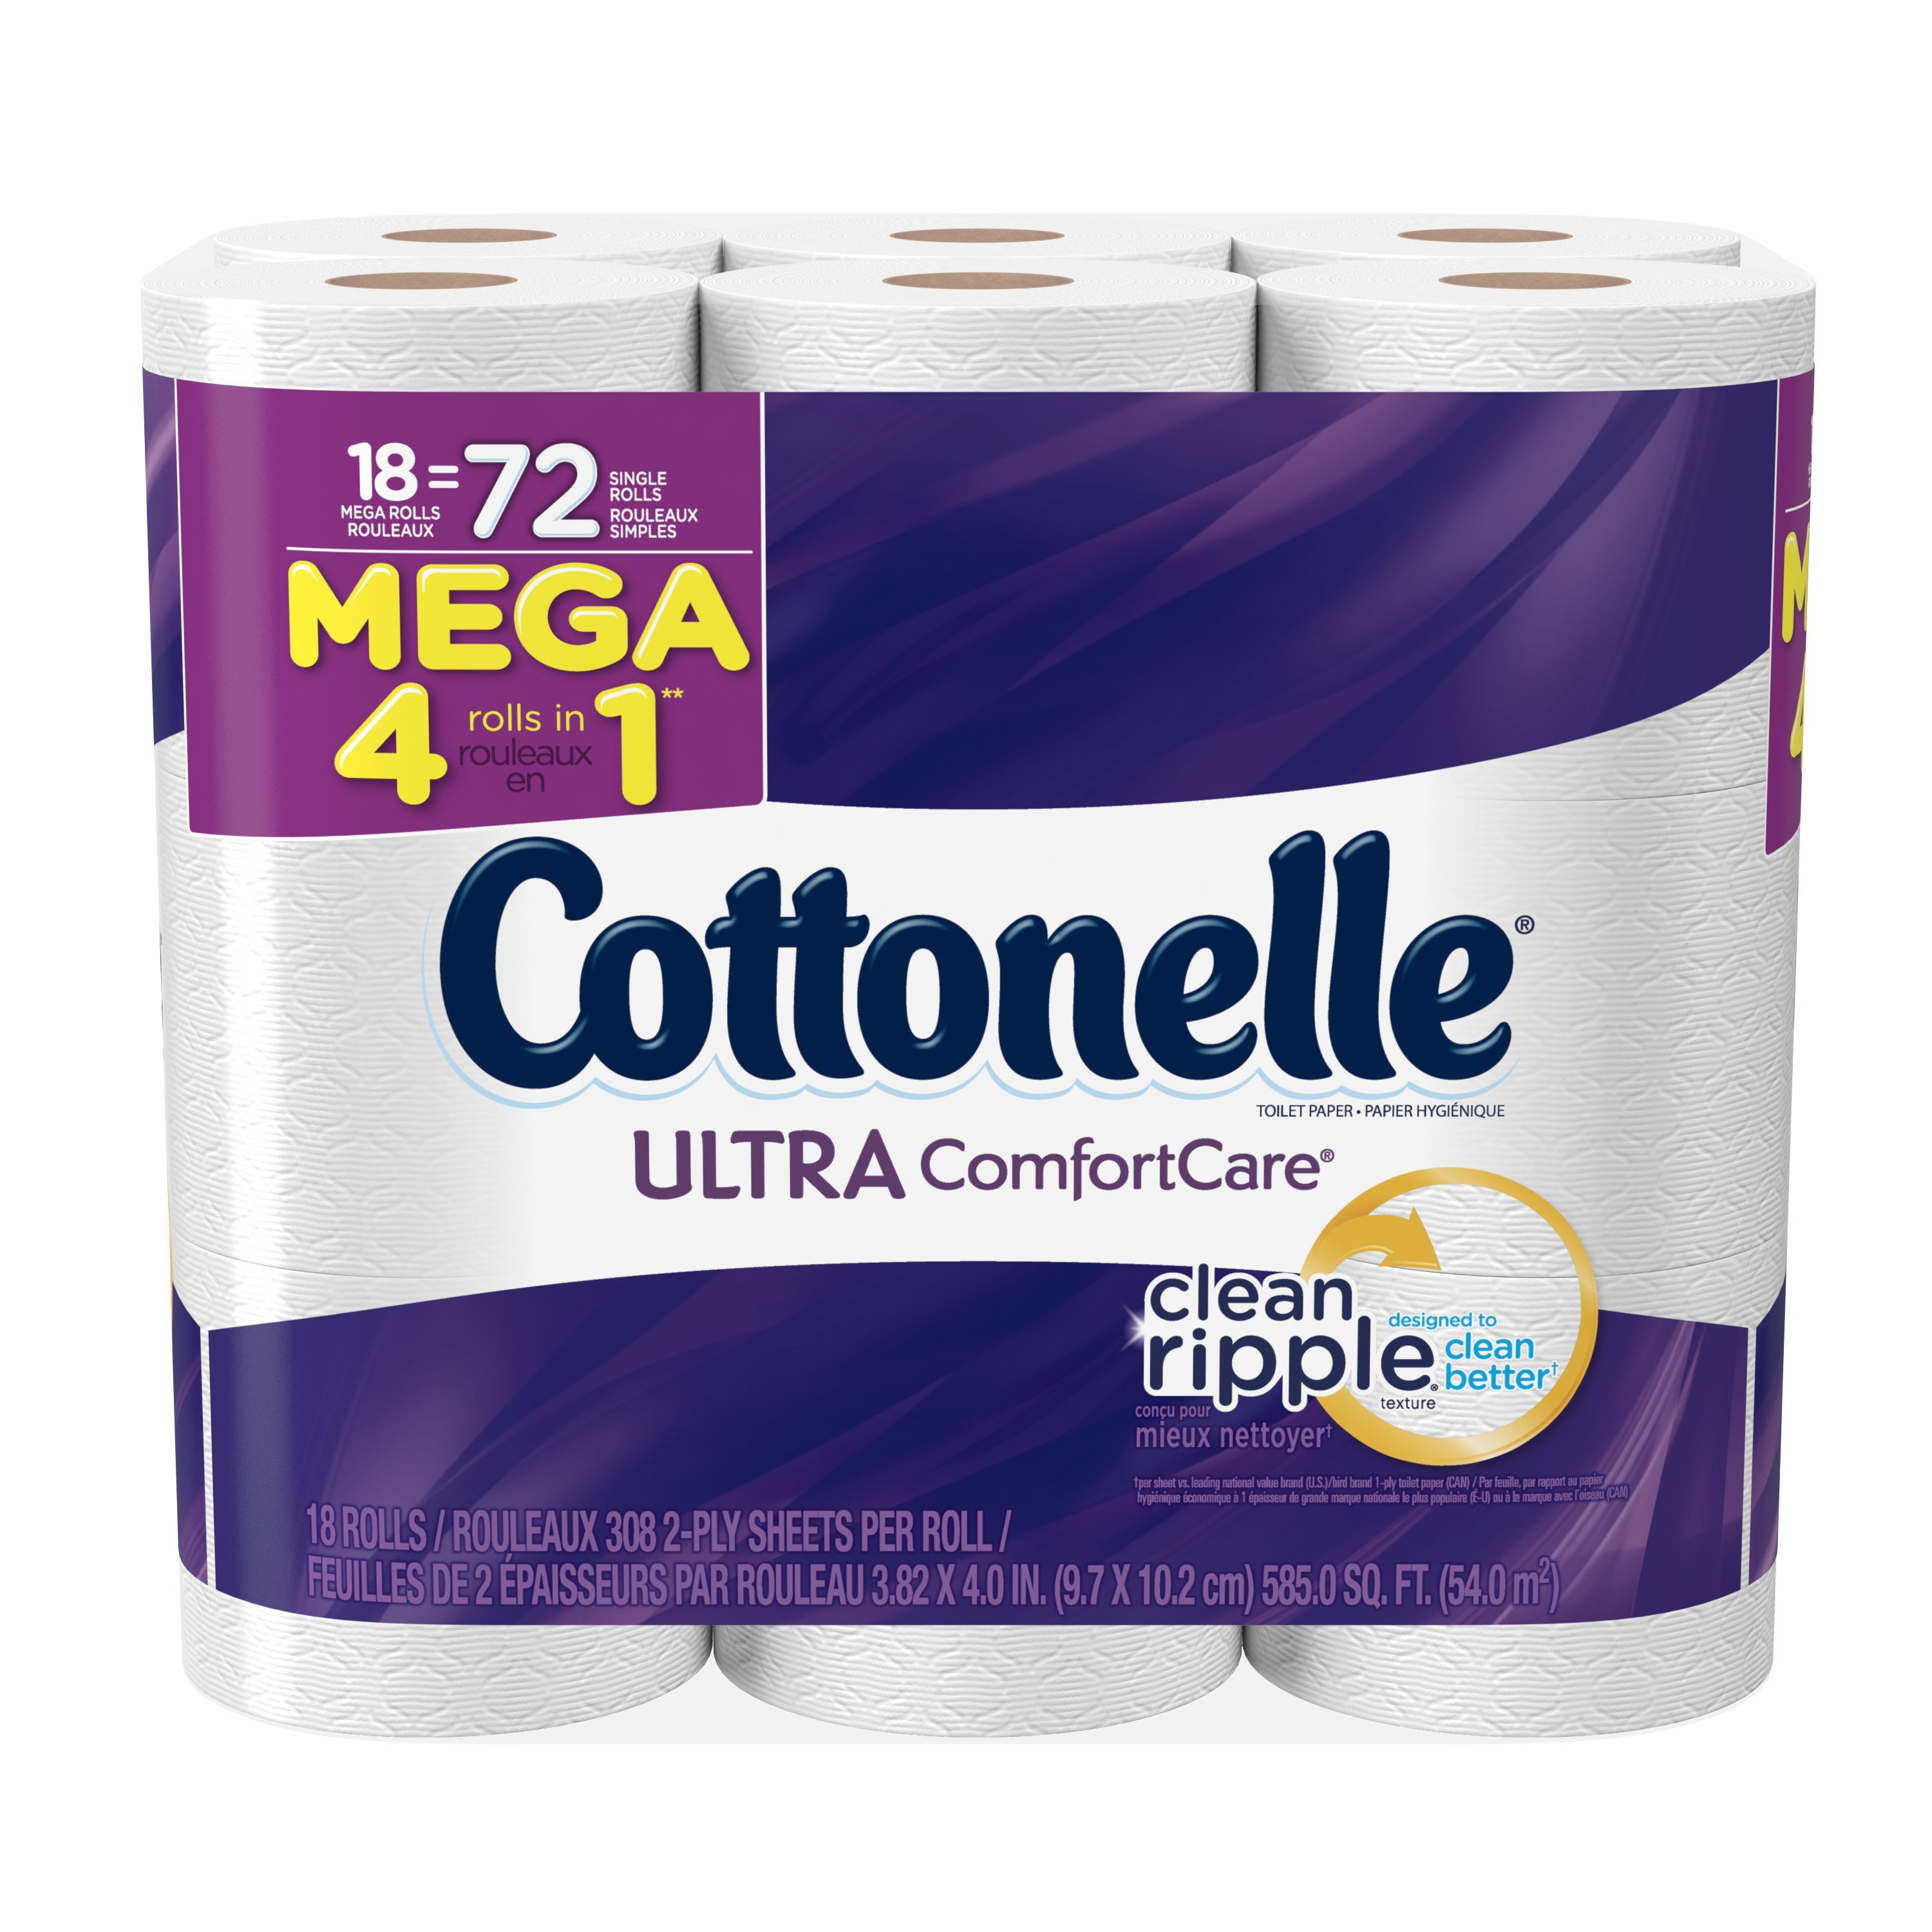 Cottonelle Toilet Paper, Ultra Comfort Care, 18 Mega Rolls by KIMBERLY-CLARK